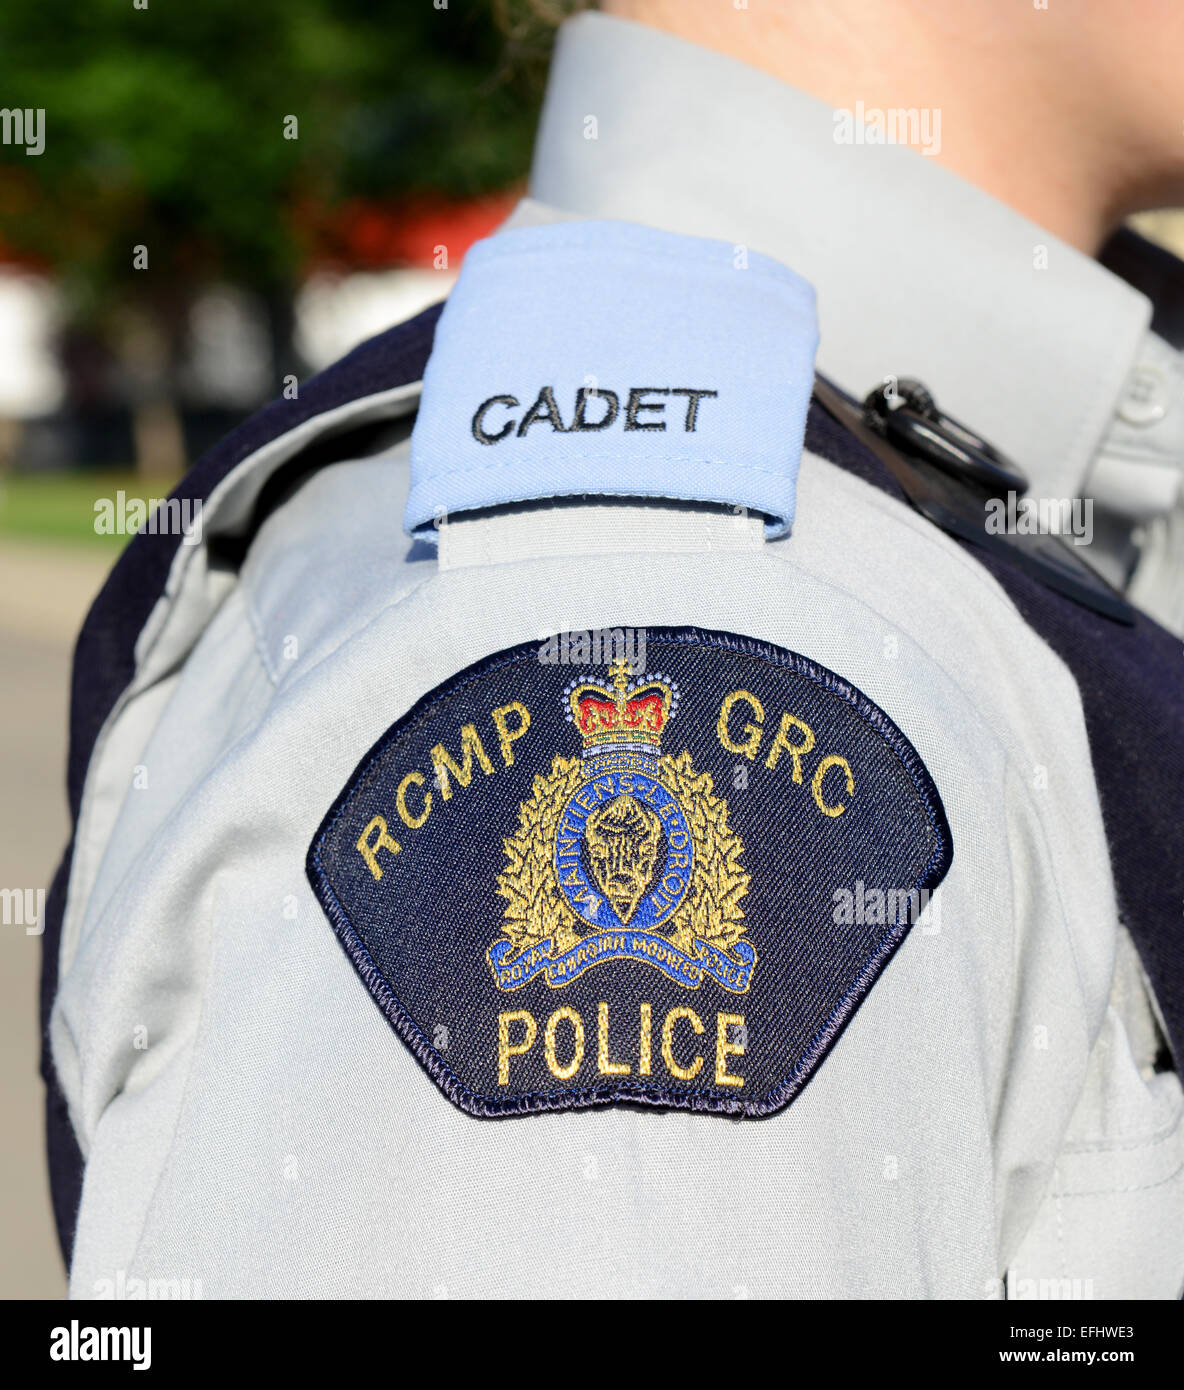 Royal Canadian Mounted Police Cadet Grc Grc Police